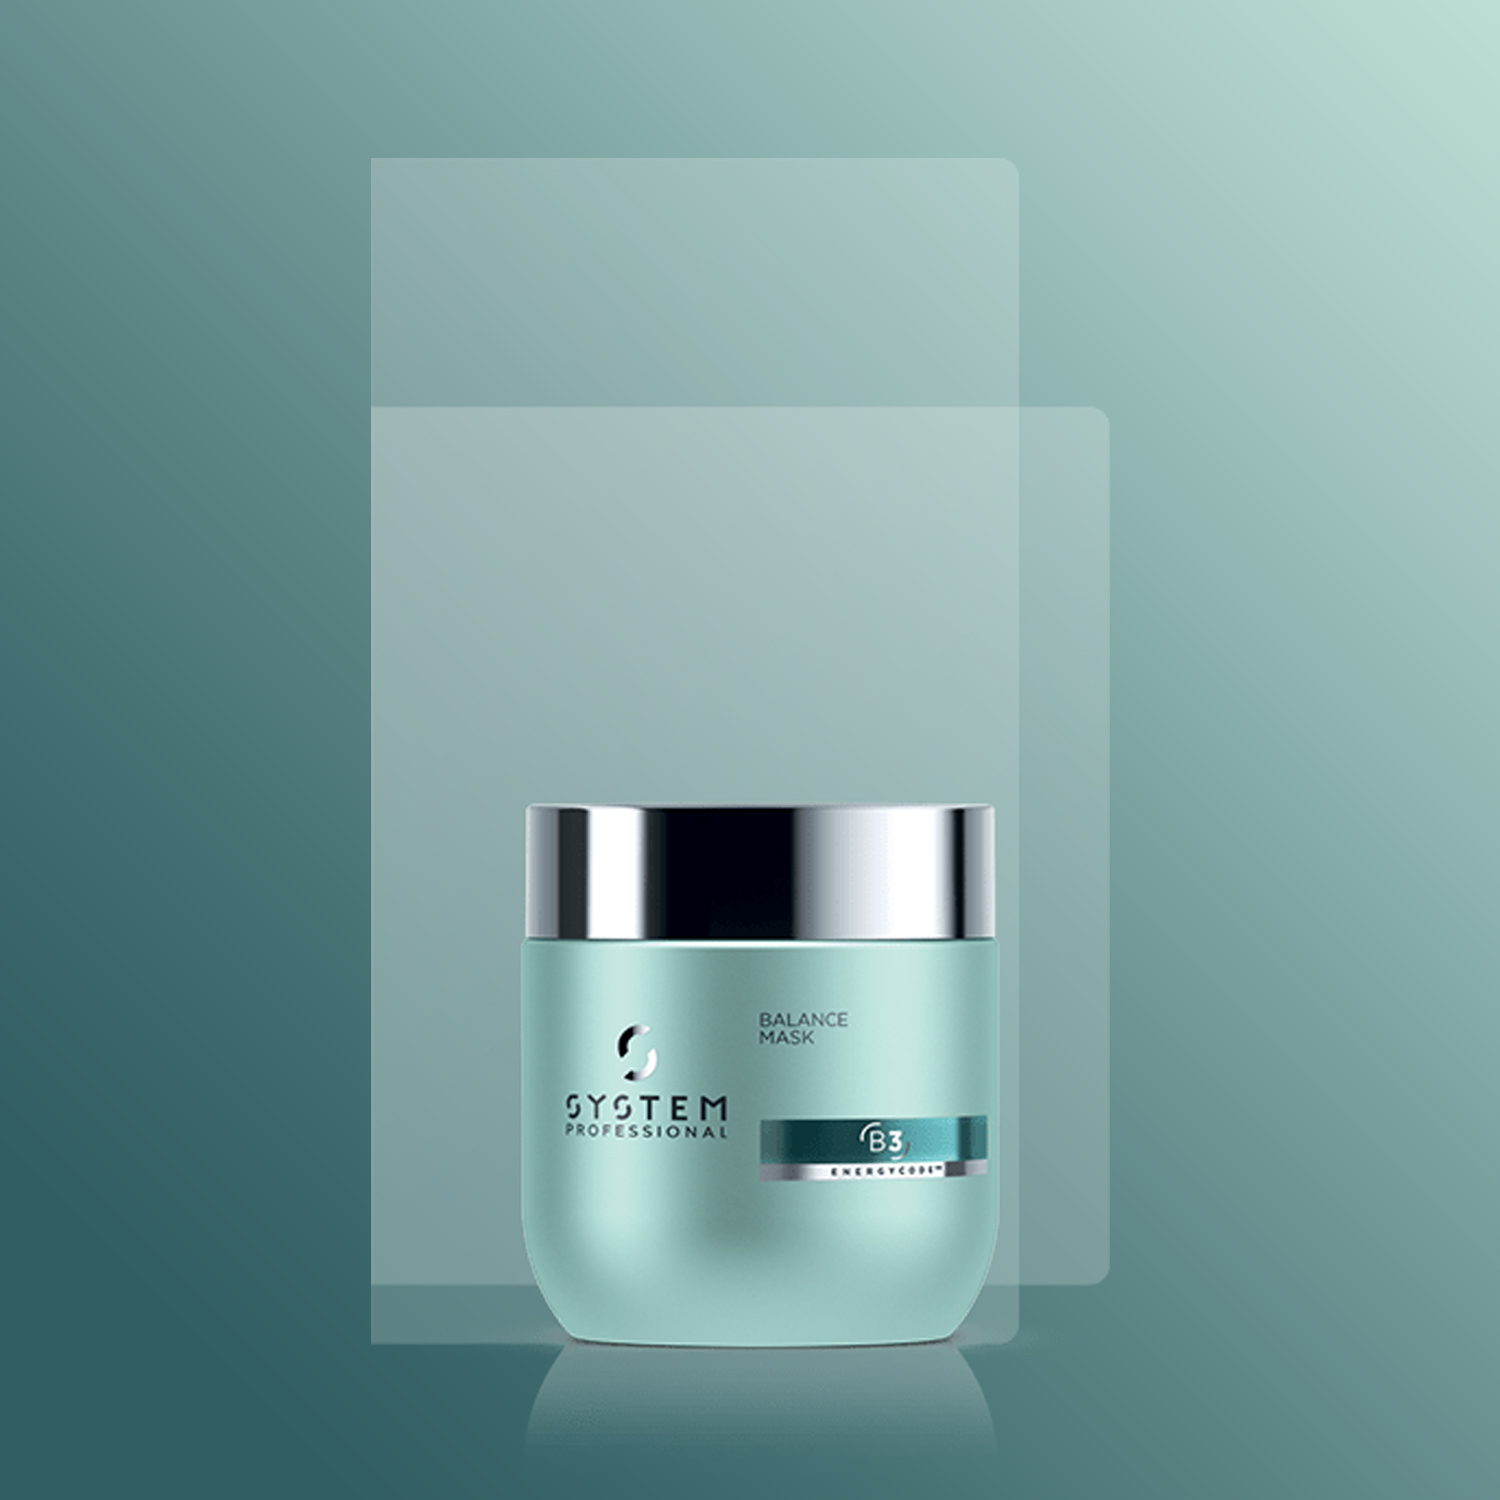 Didact System Professional Balance masque